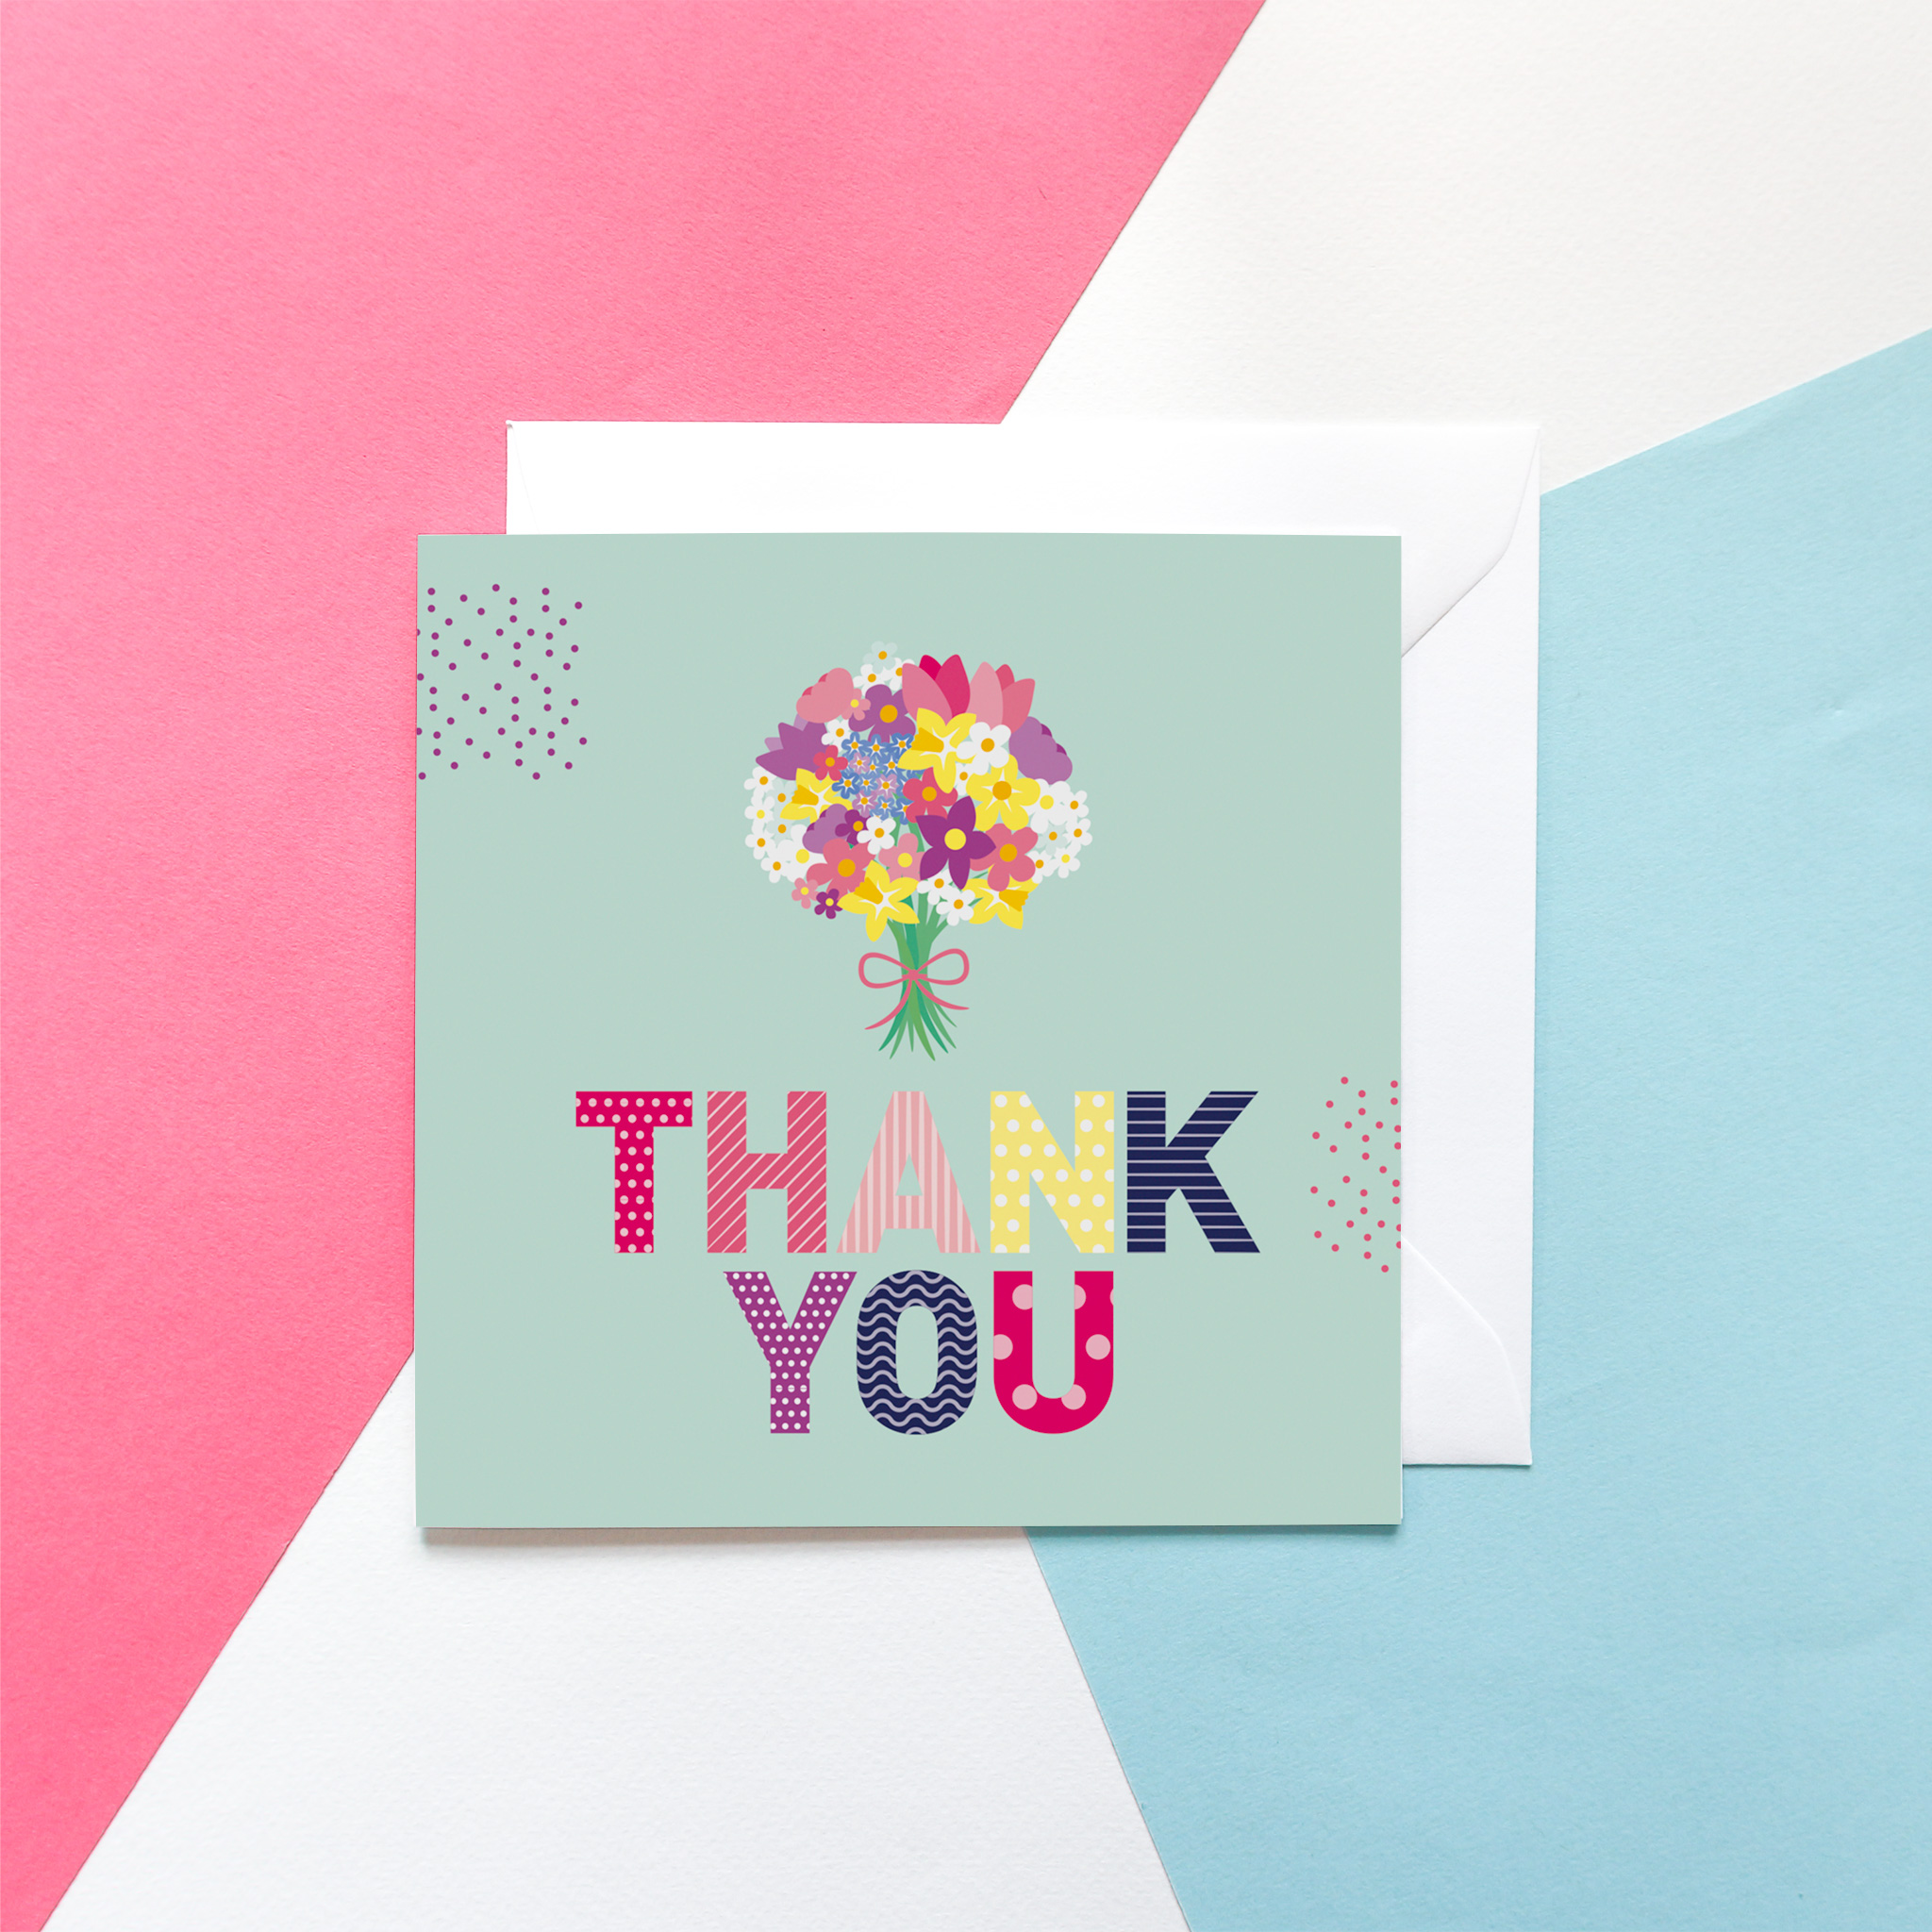 """Graphic """"Thank you"""" card design with patterned, colourful letters and a colourful bunch of flowers above the lettering, against a mint green background. The card is set against a pink, blue and white background."""